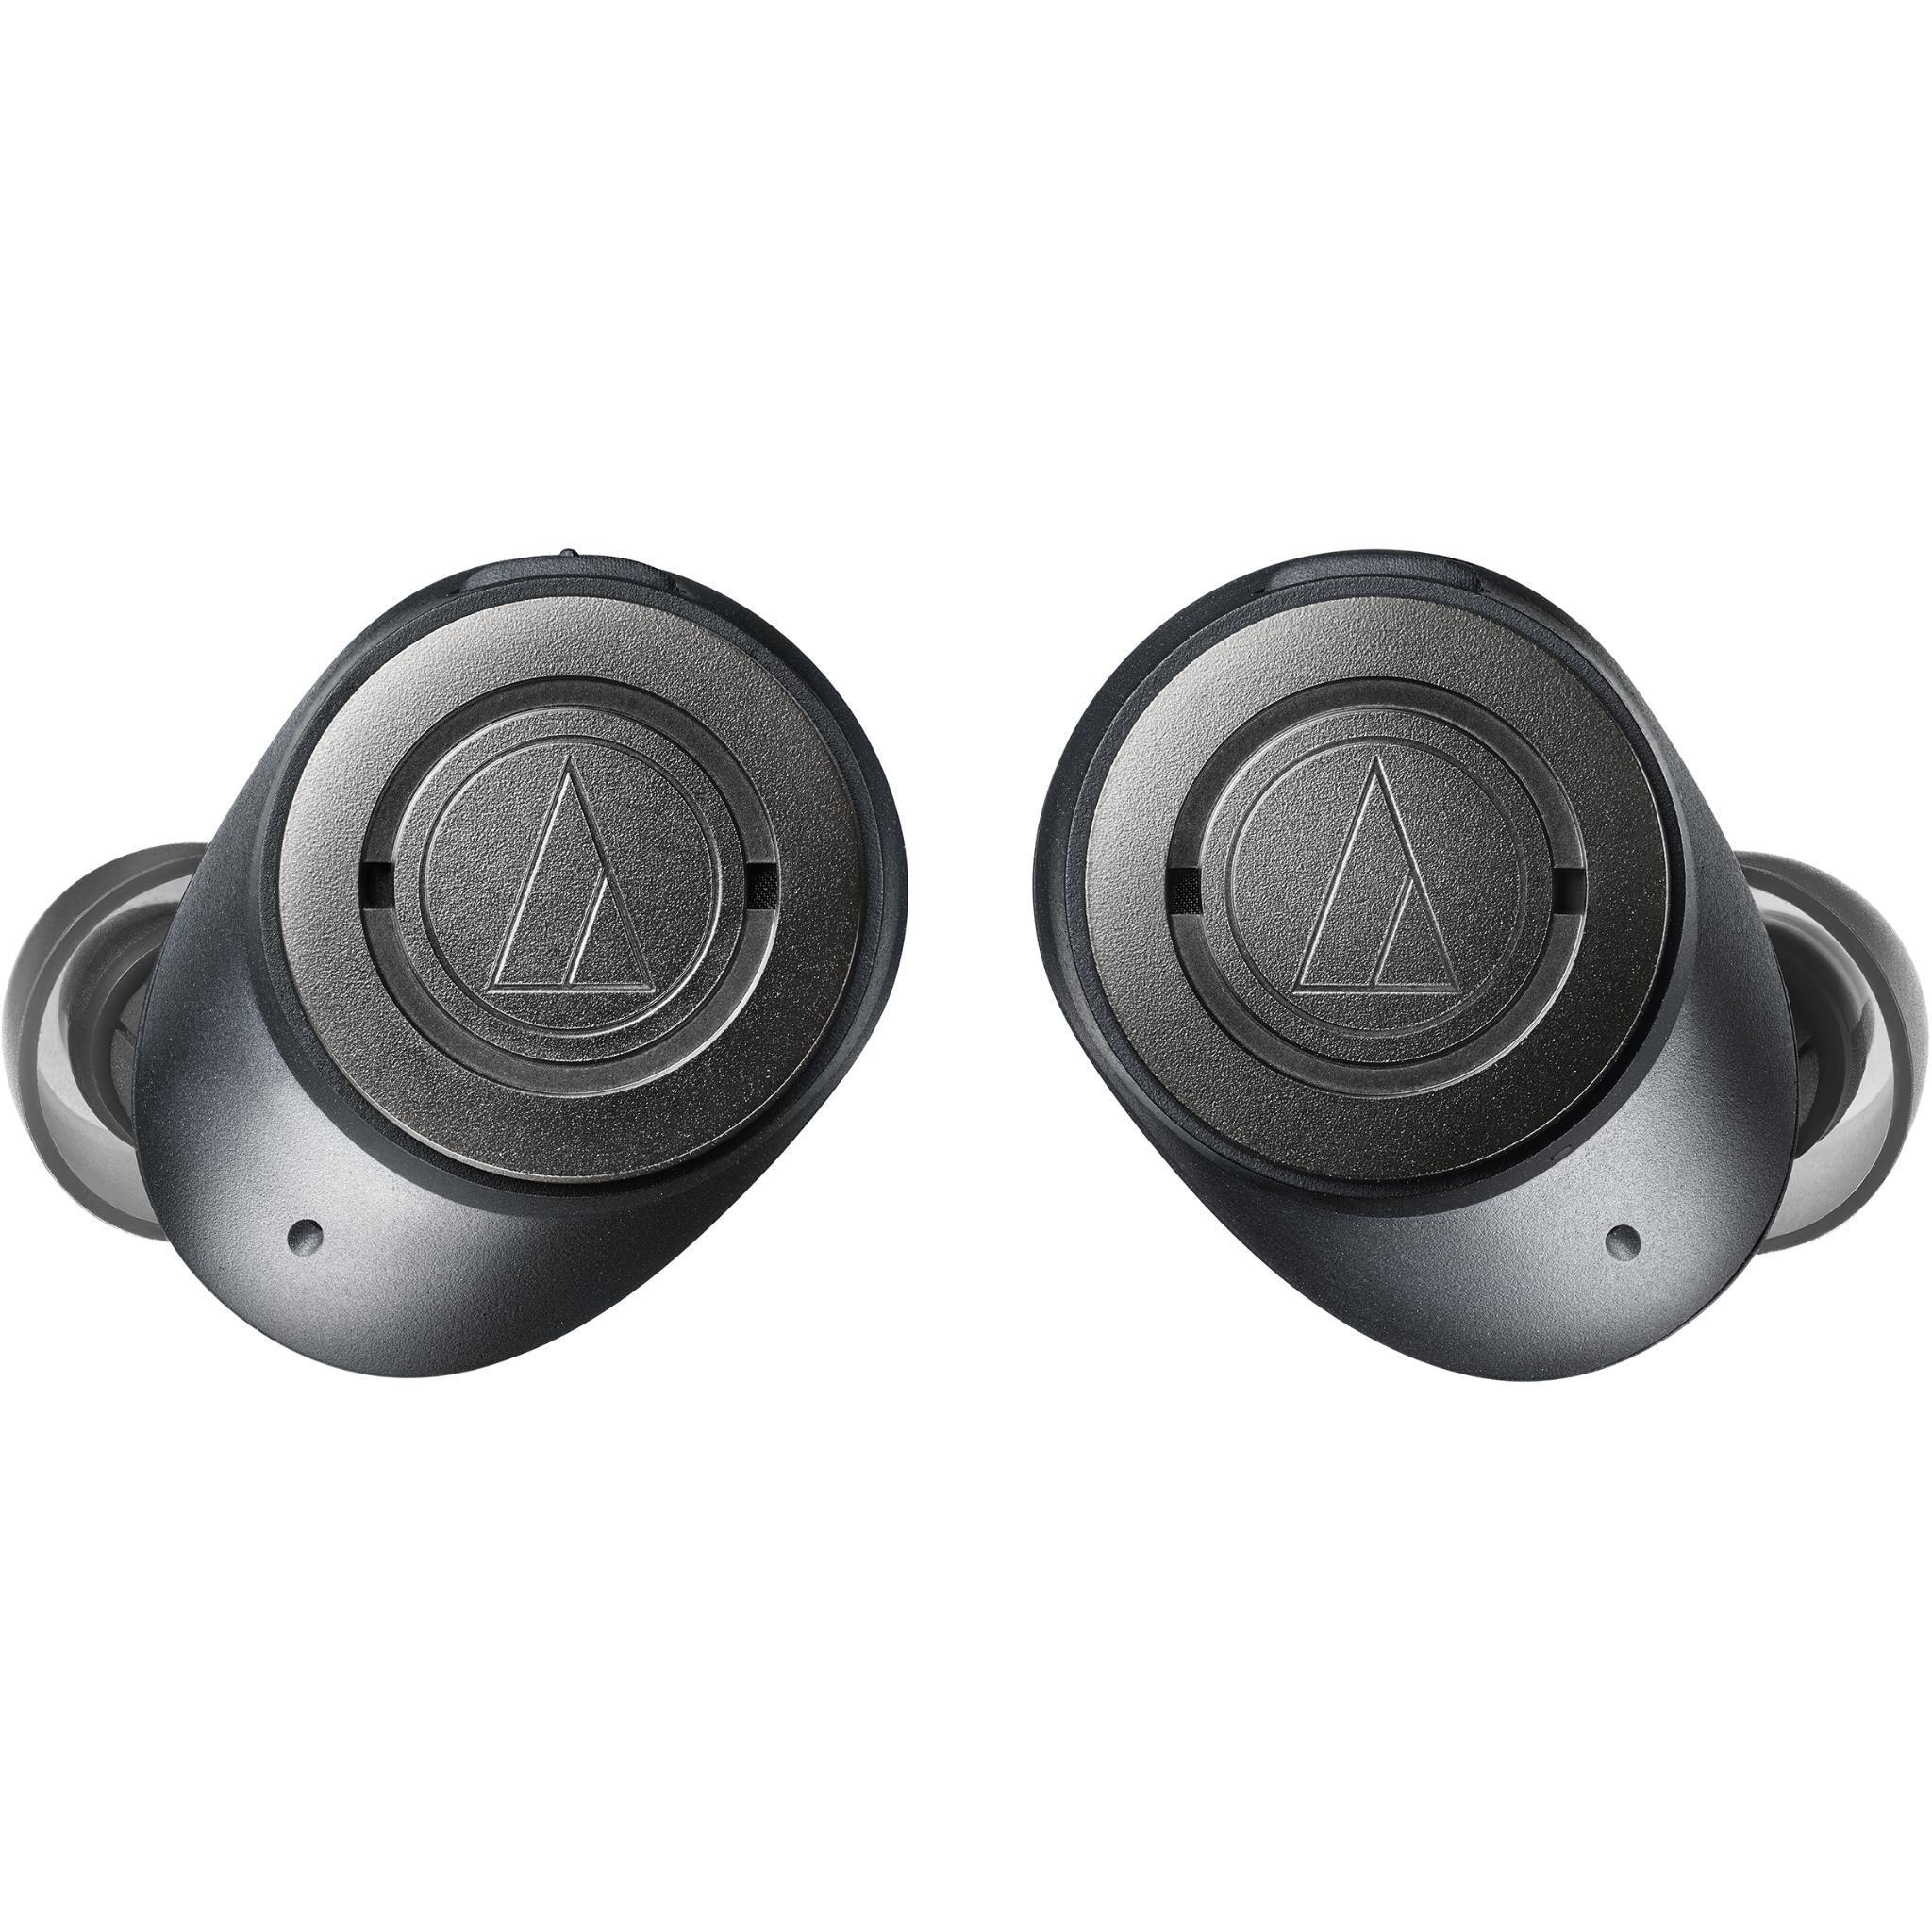 Audio Technica ATH-ANC300TW True Wireless Solid Bass In-ear Headphones (Black)